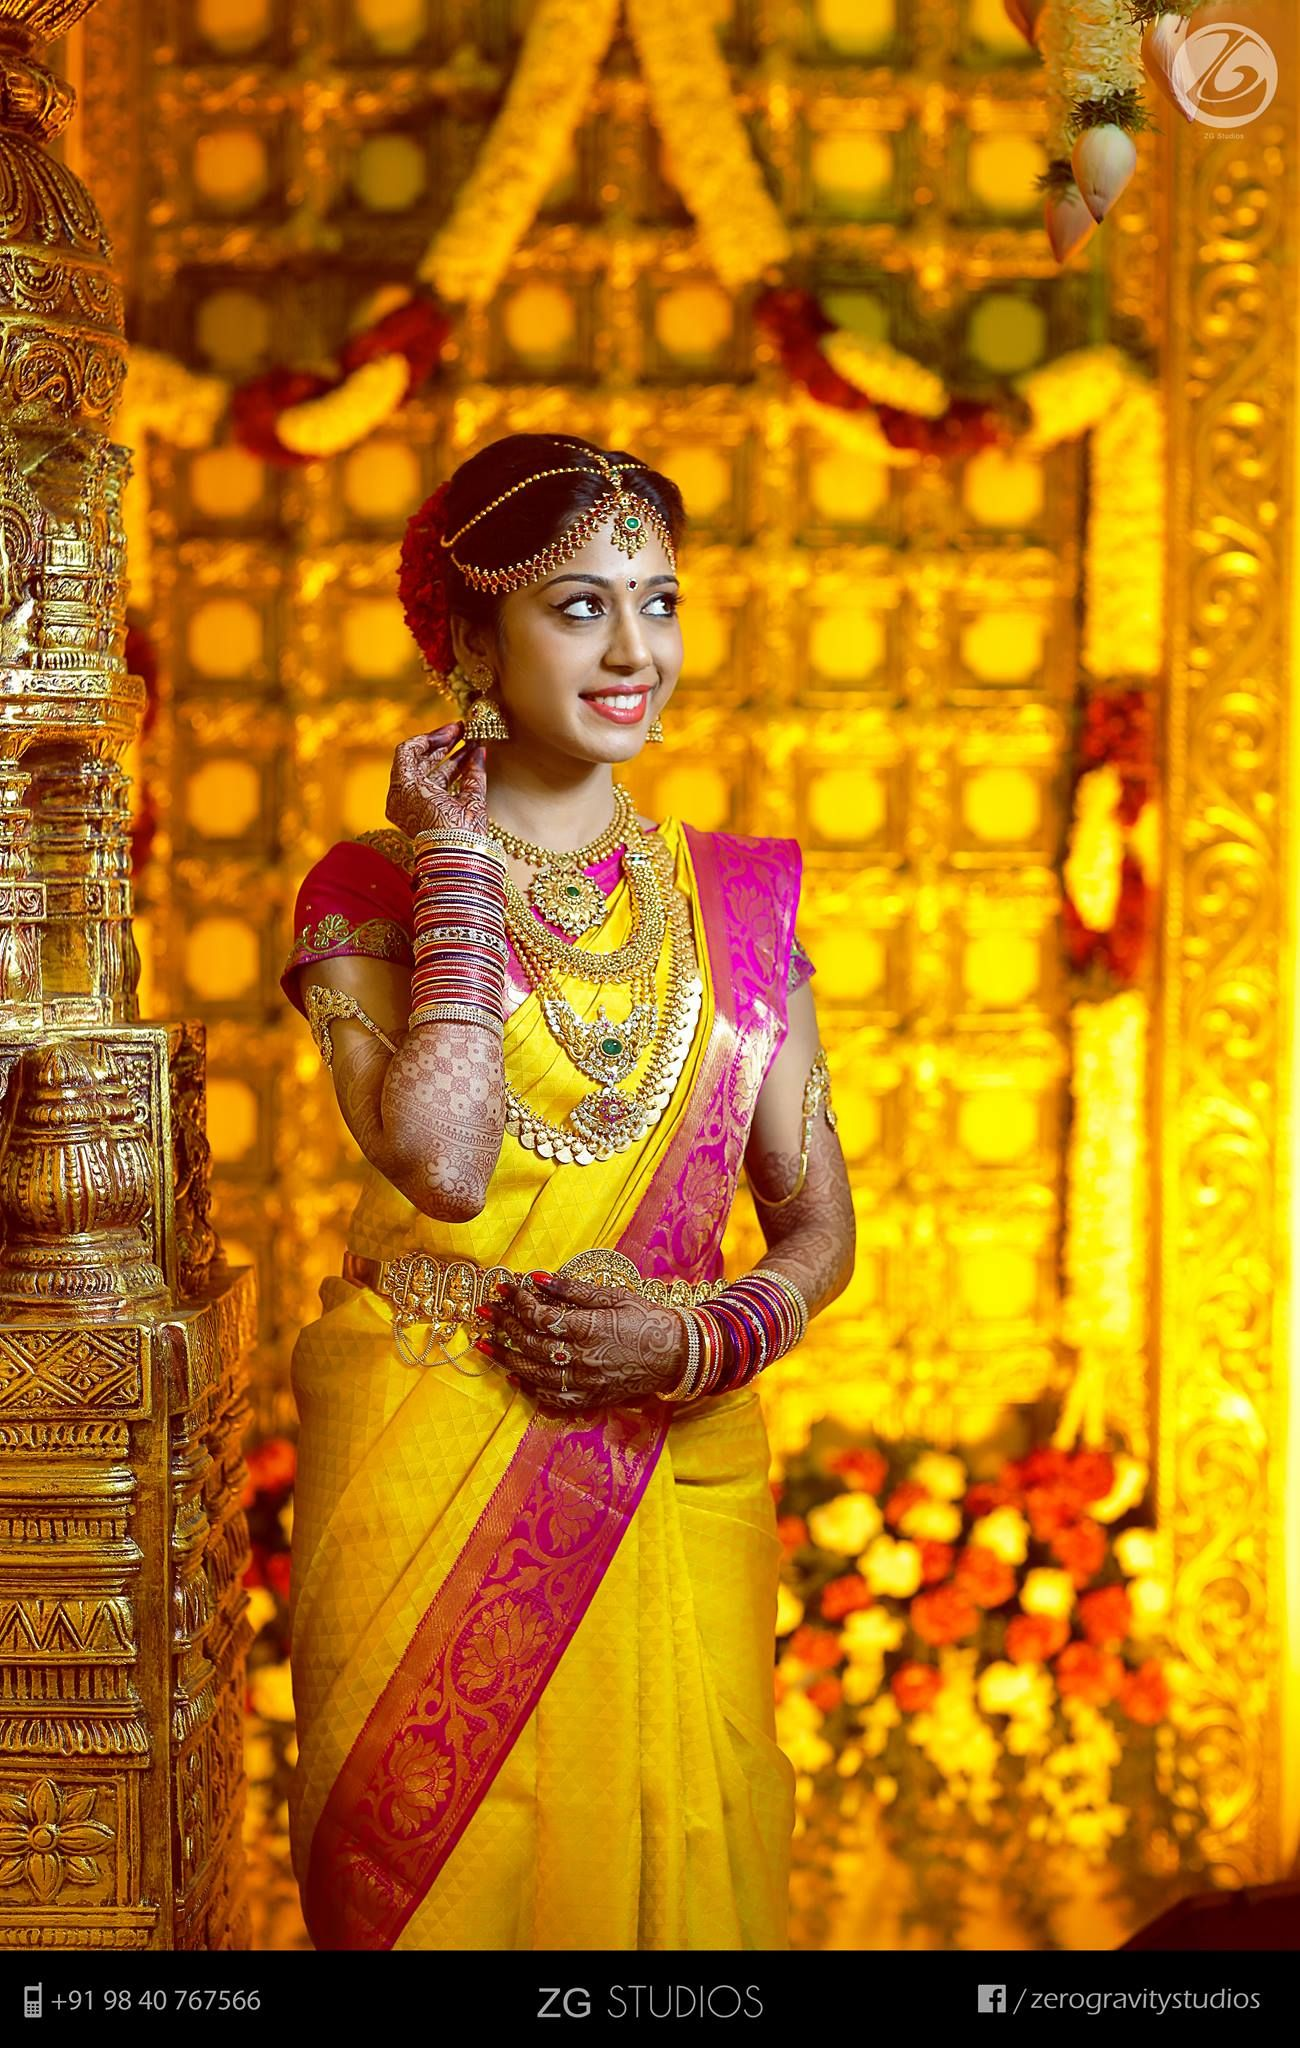 b4812a7975 South Indian bride. Diamond Indian bridal jewelry.Temple jewelry. Jhumkis. Yellow and pink silk kanchipuram sari.Braid with fresh flowers. Tamil bride.